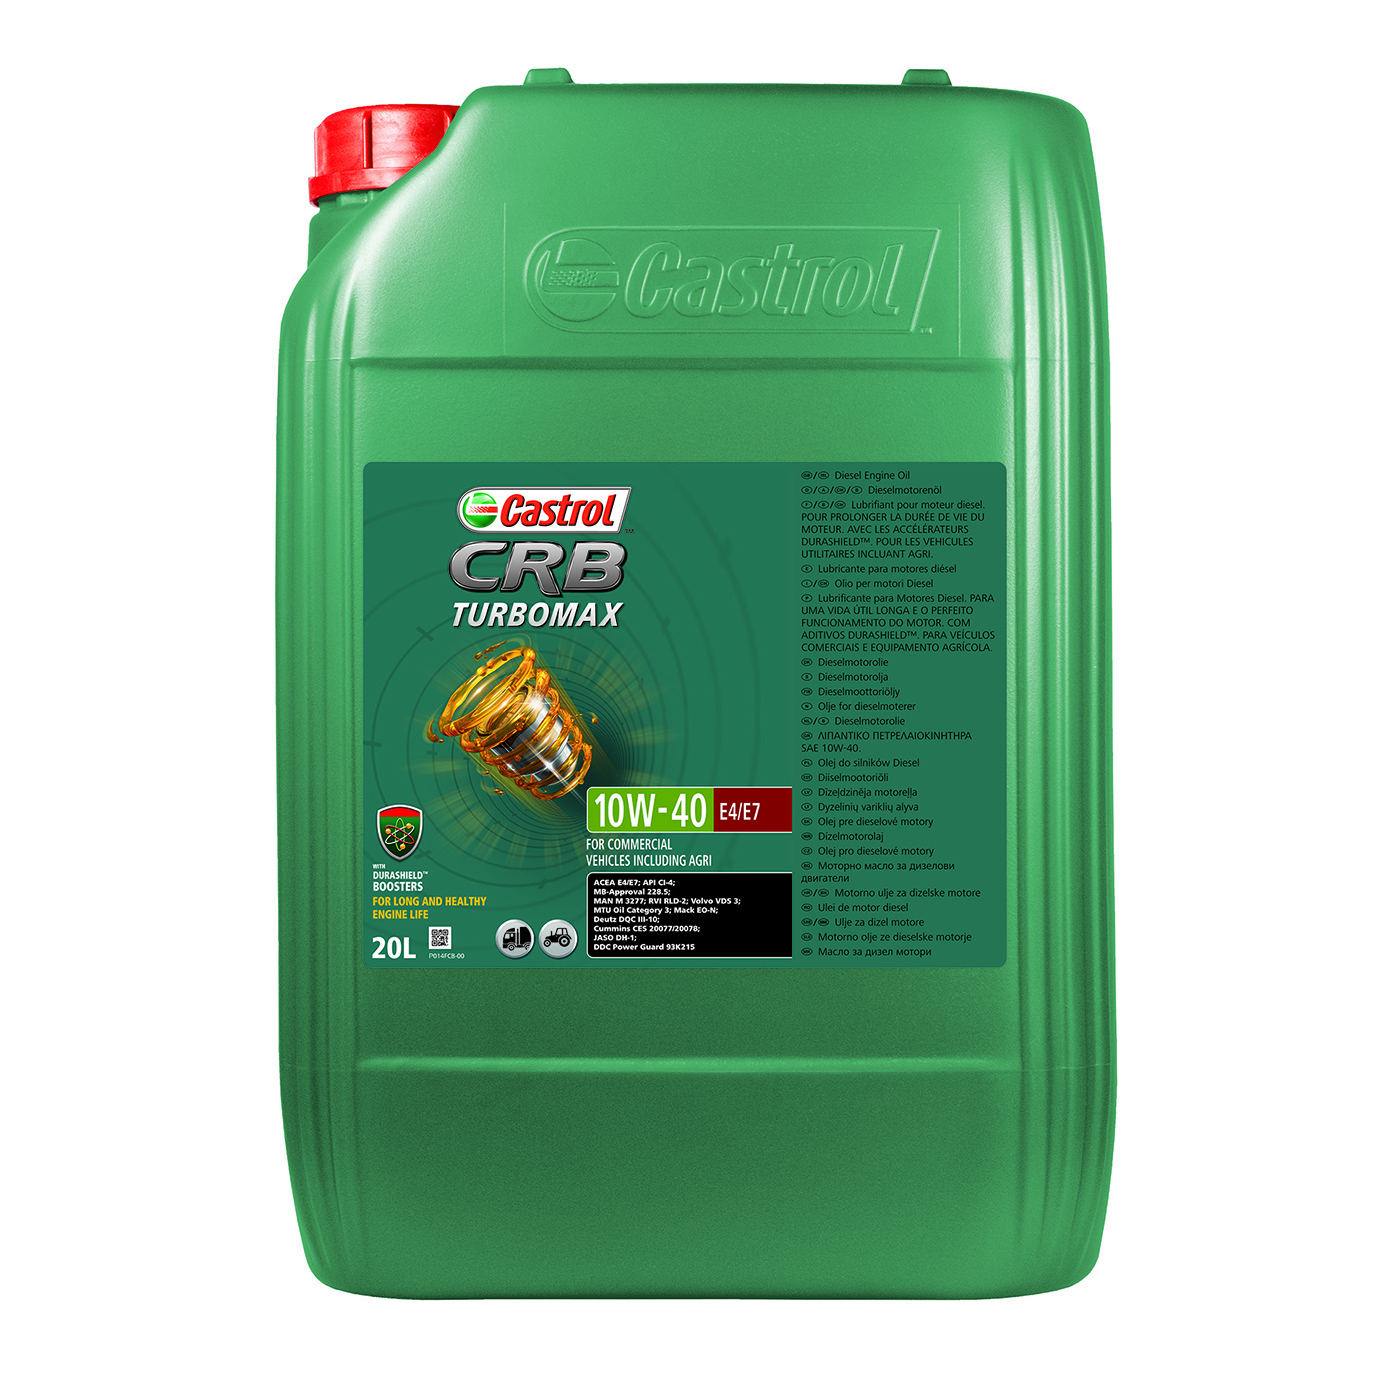 Castrol CRB Turbomax Engine Oils For Trucks And Buses